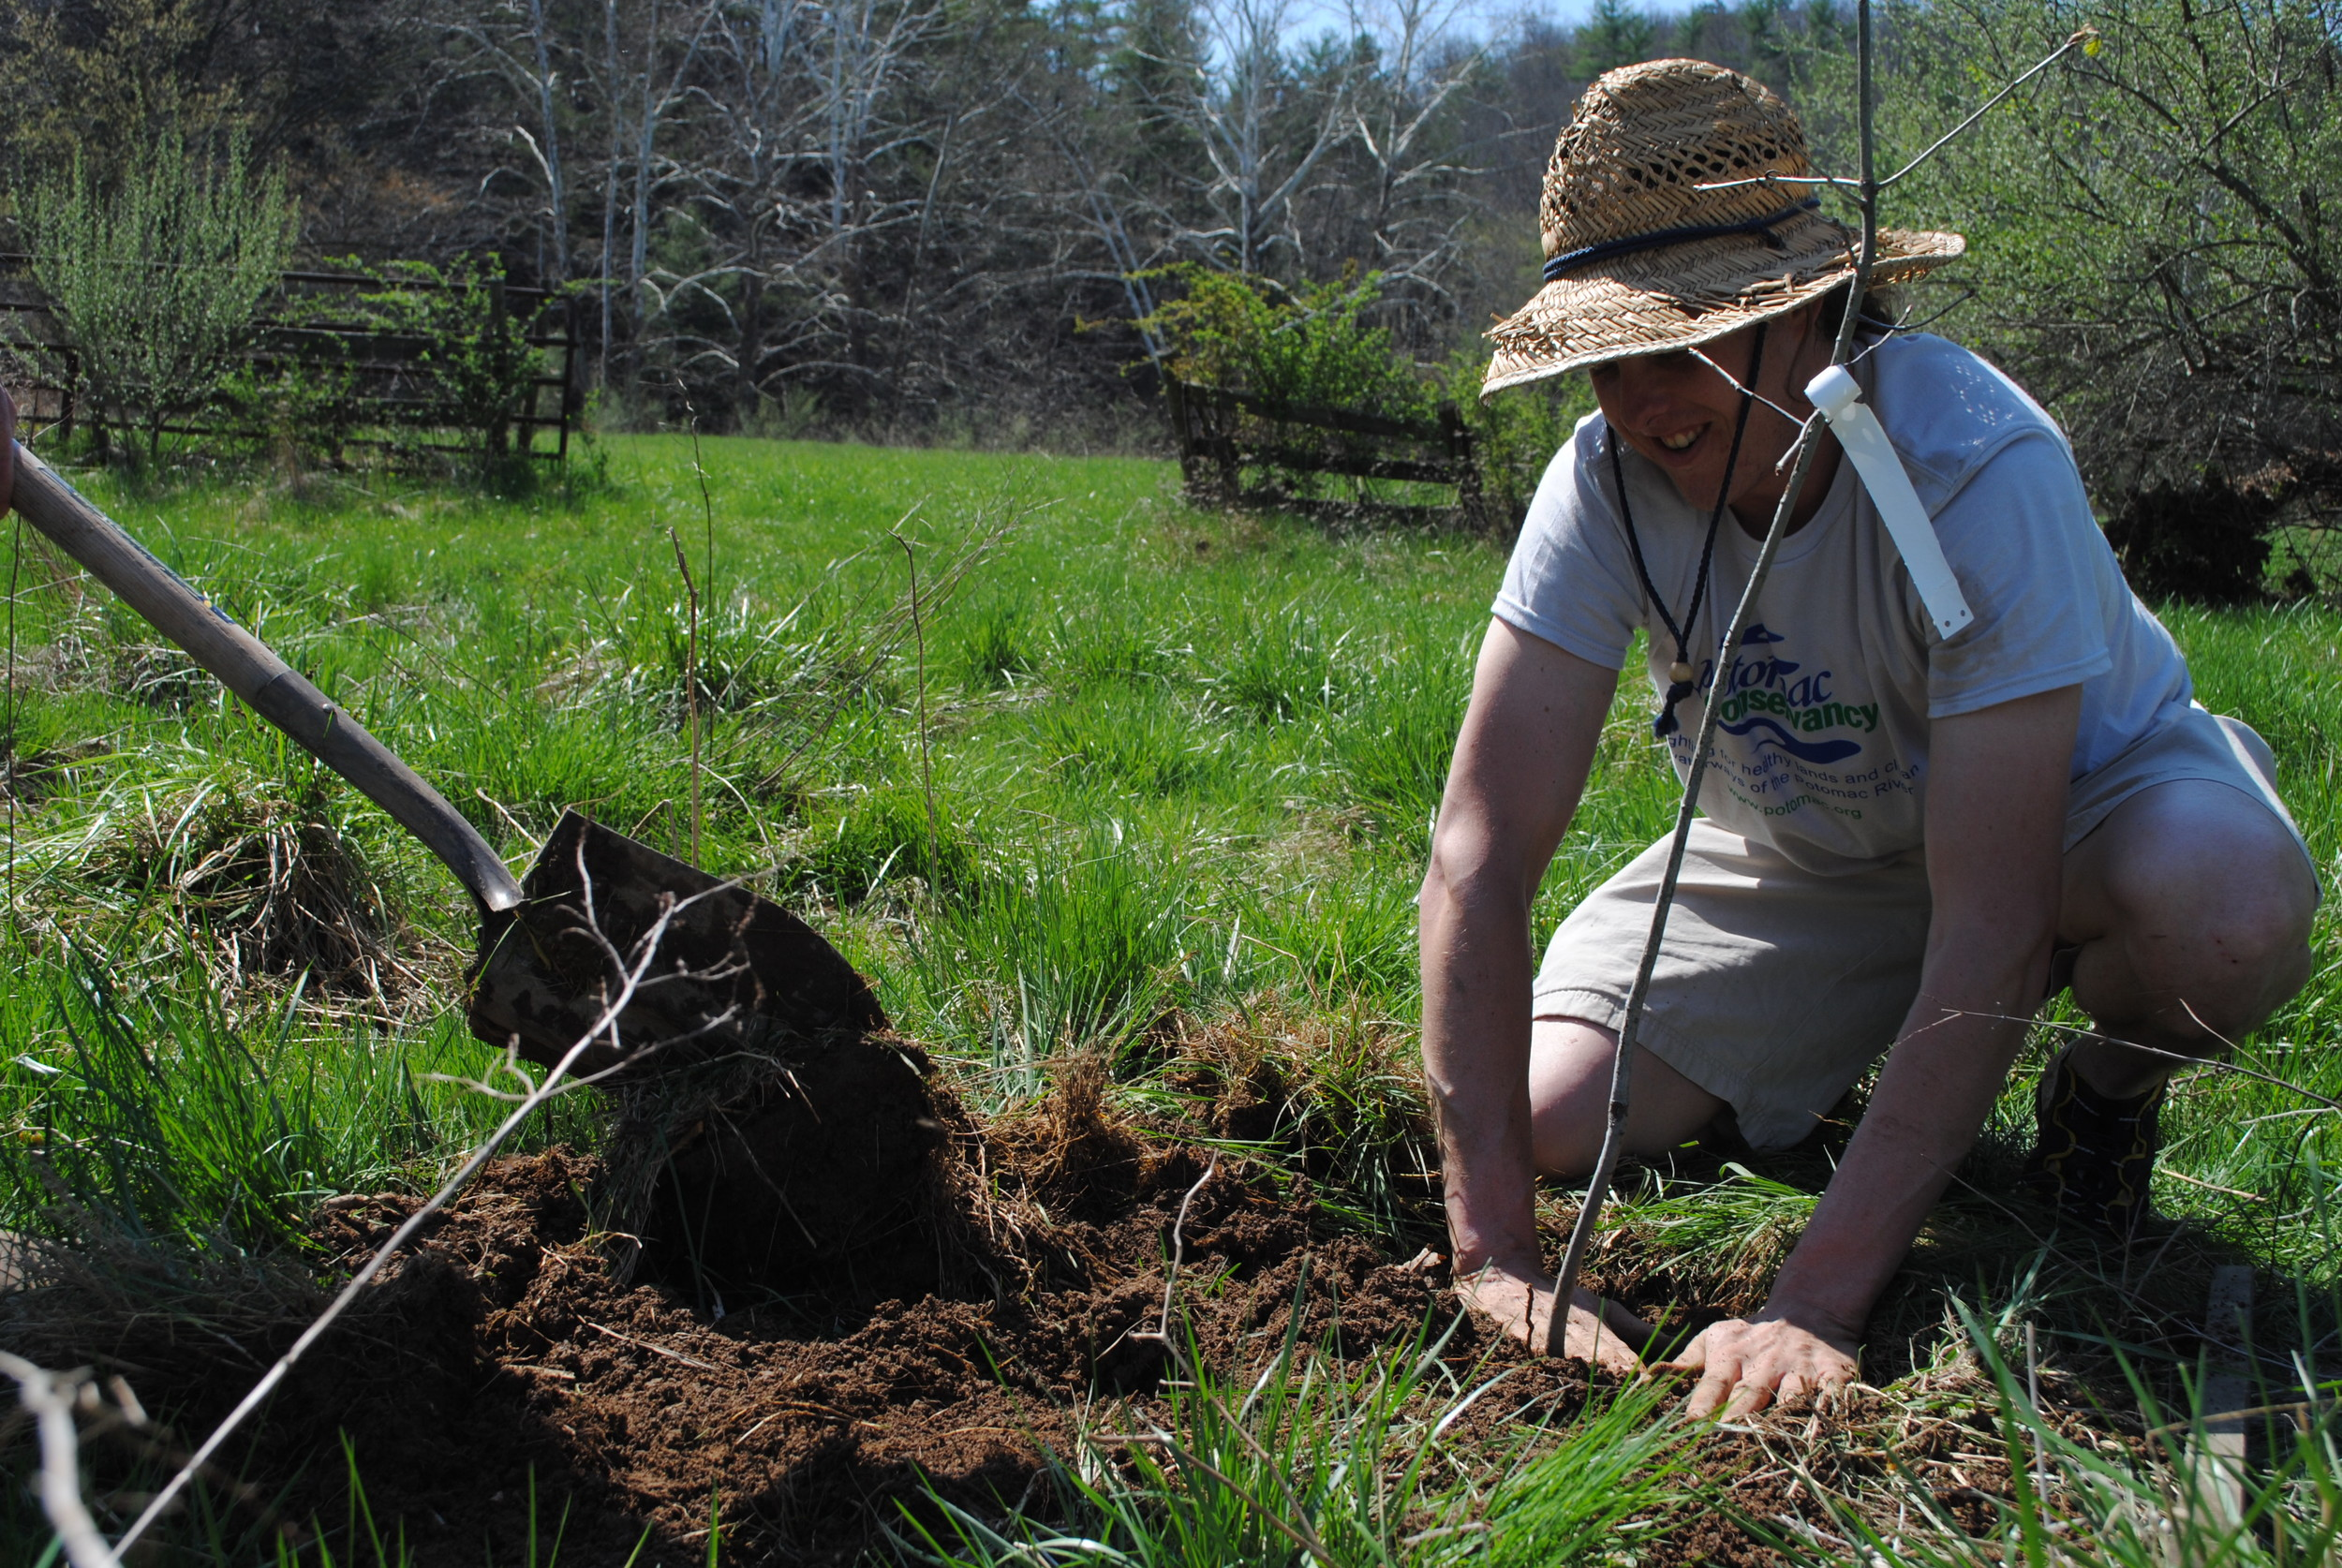 Lauran, a West virginiaLandowner and beekeeper, pattingdown the soil around a newly planted tree.